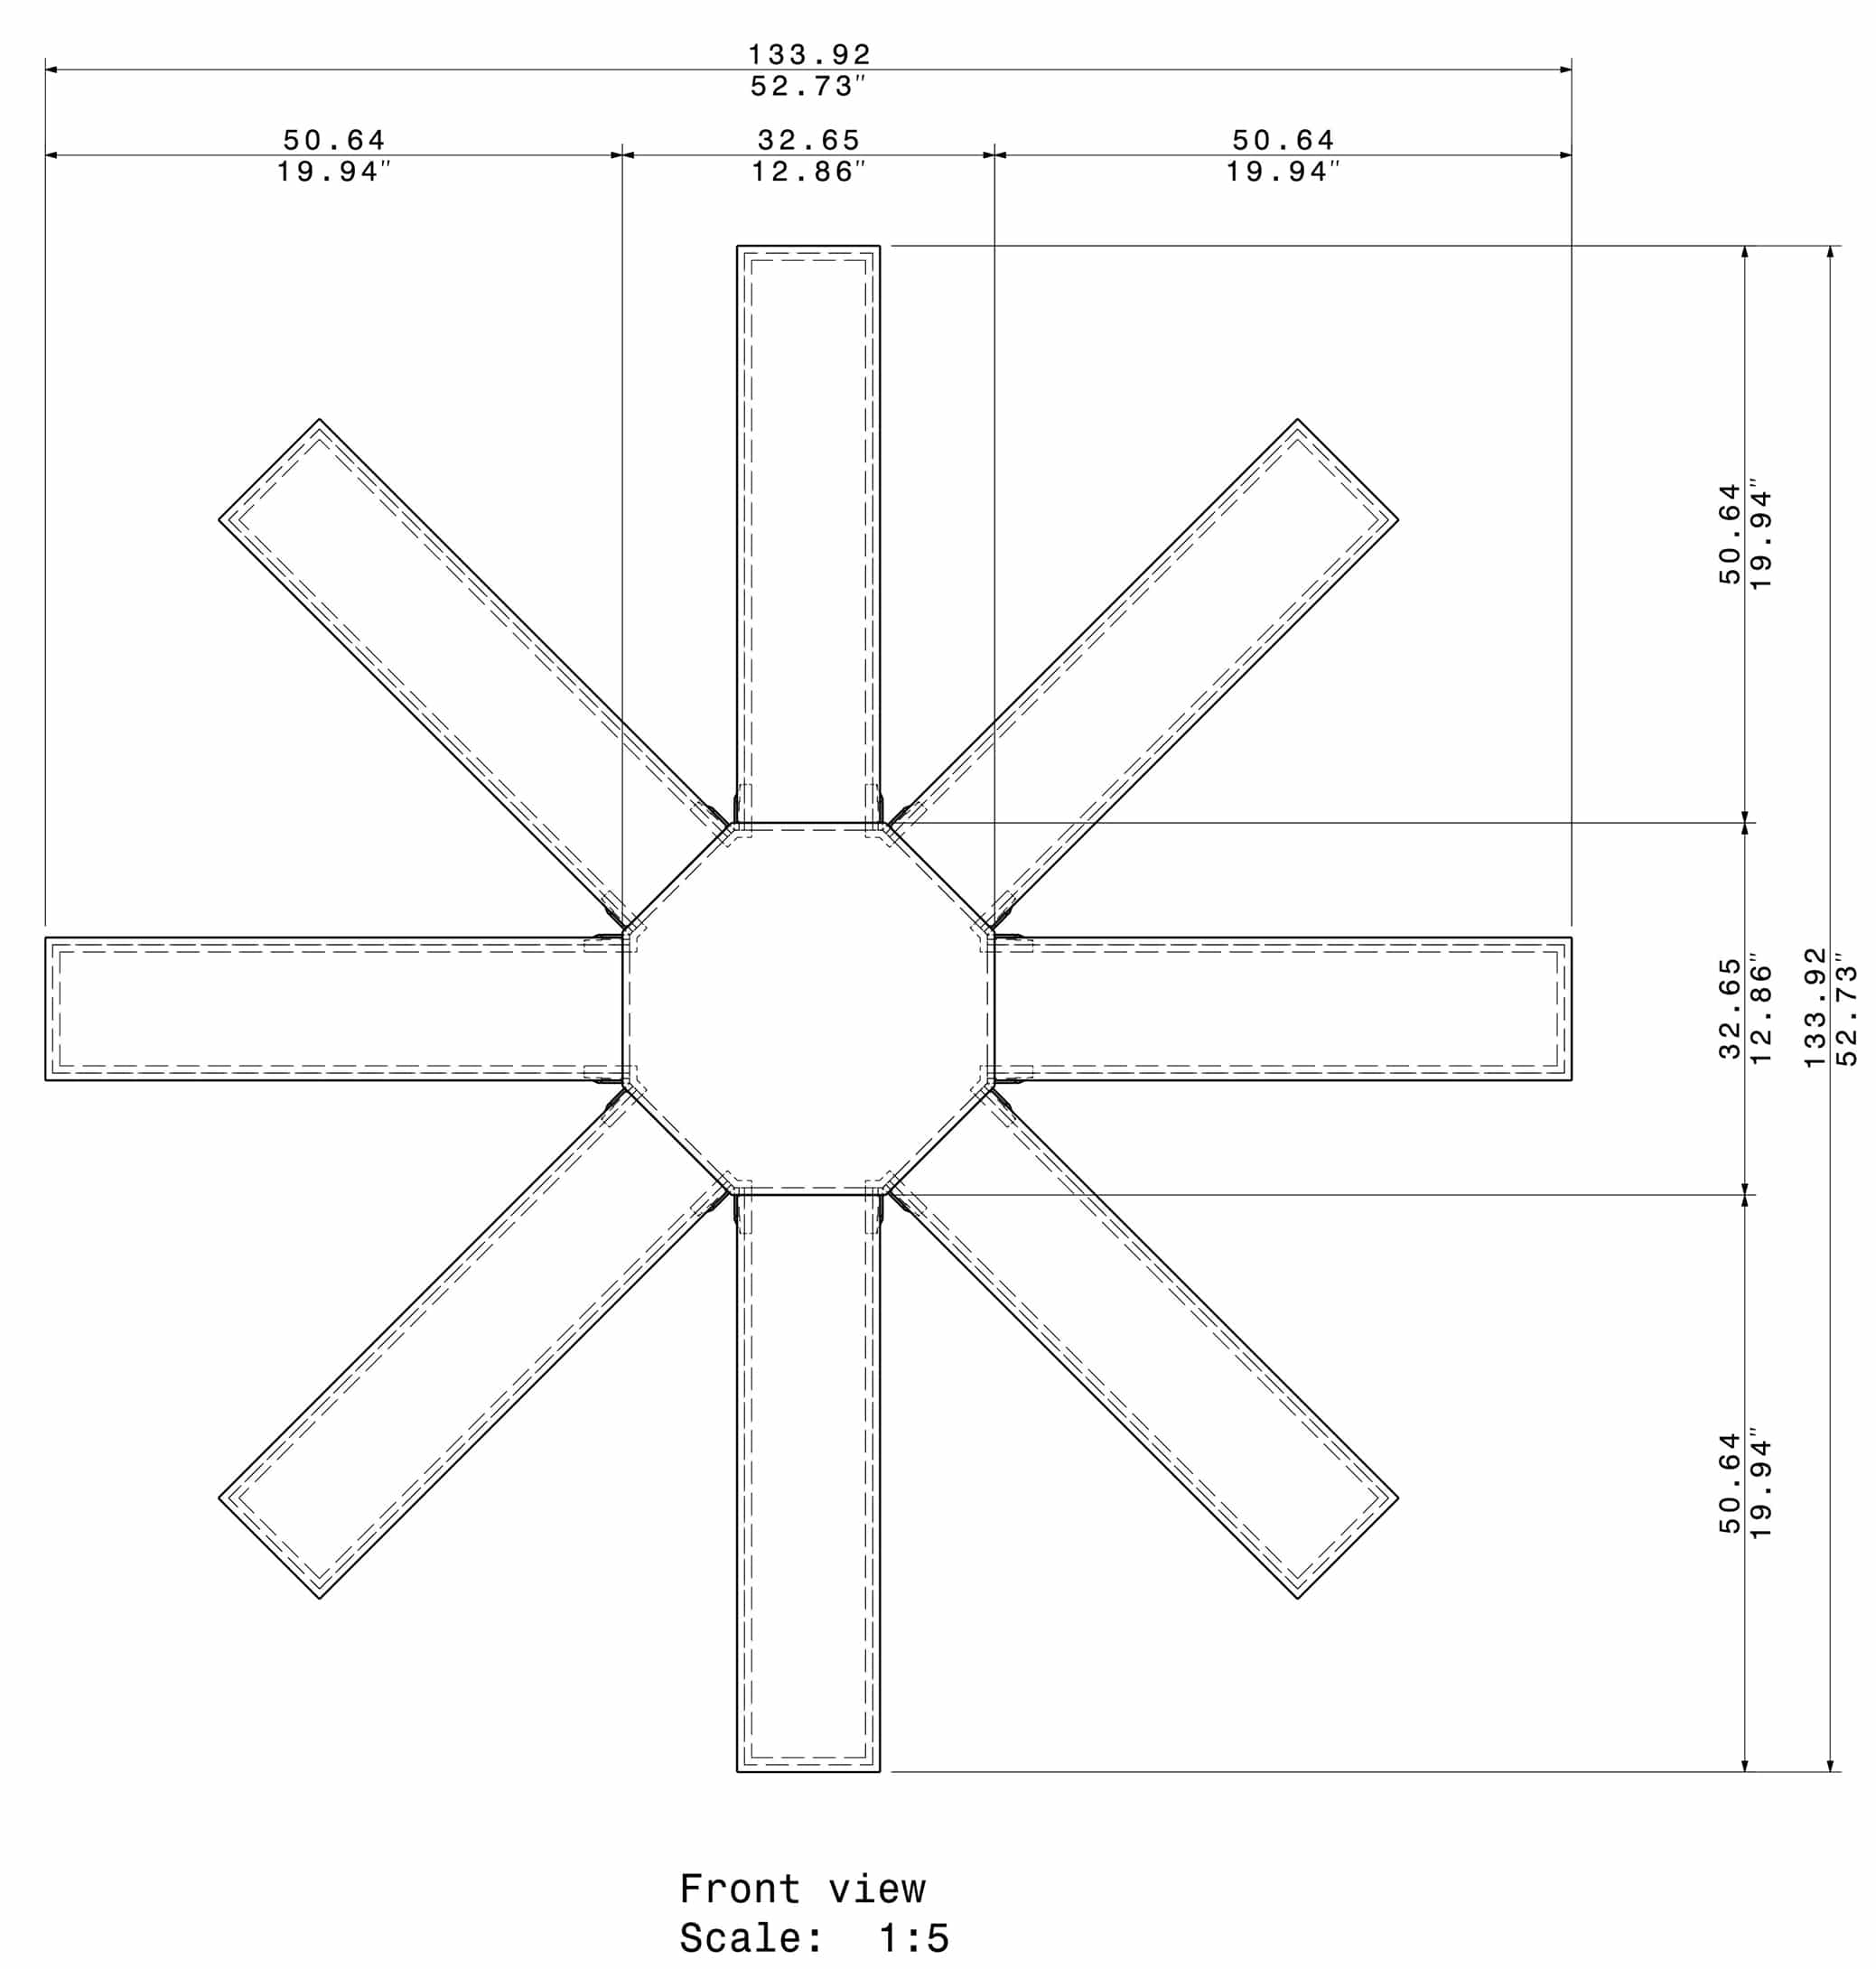 Radial Arm Maze - Removable Model - Mouse (Image 2)